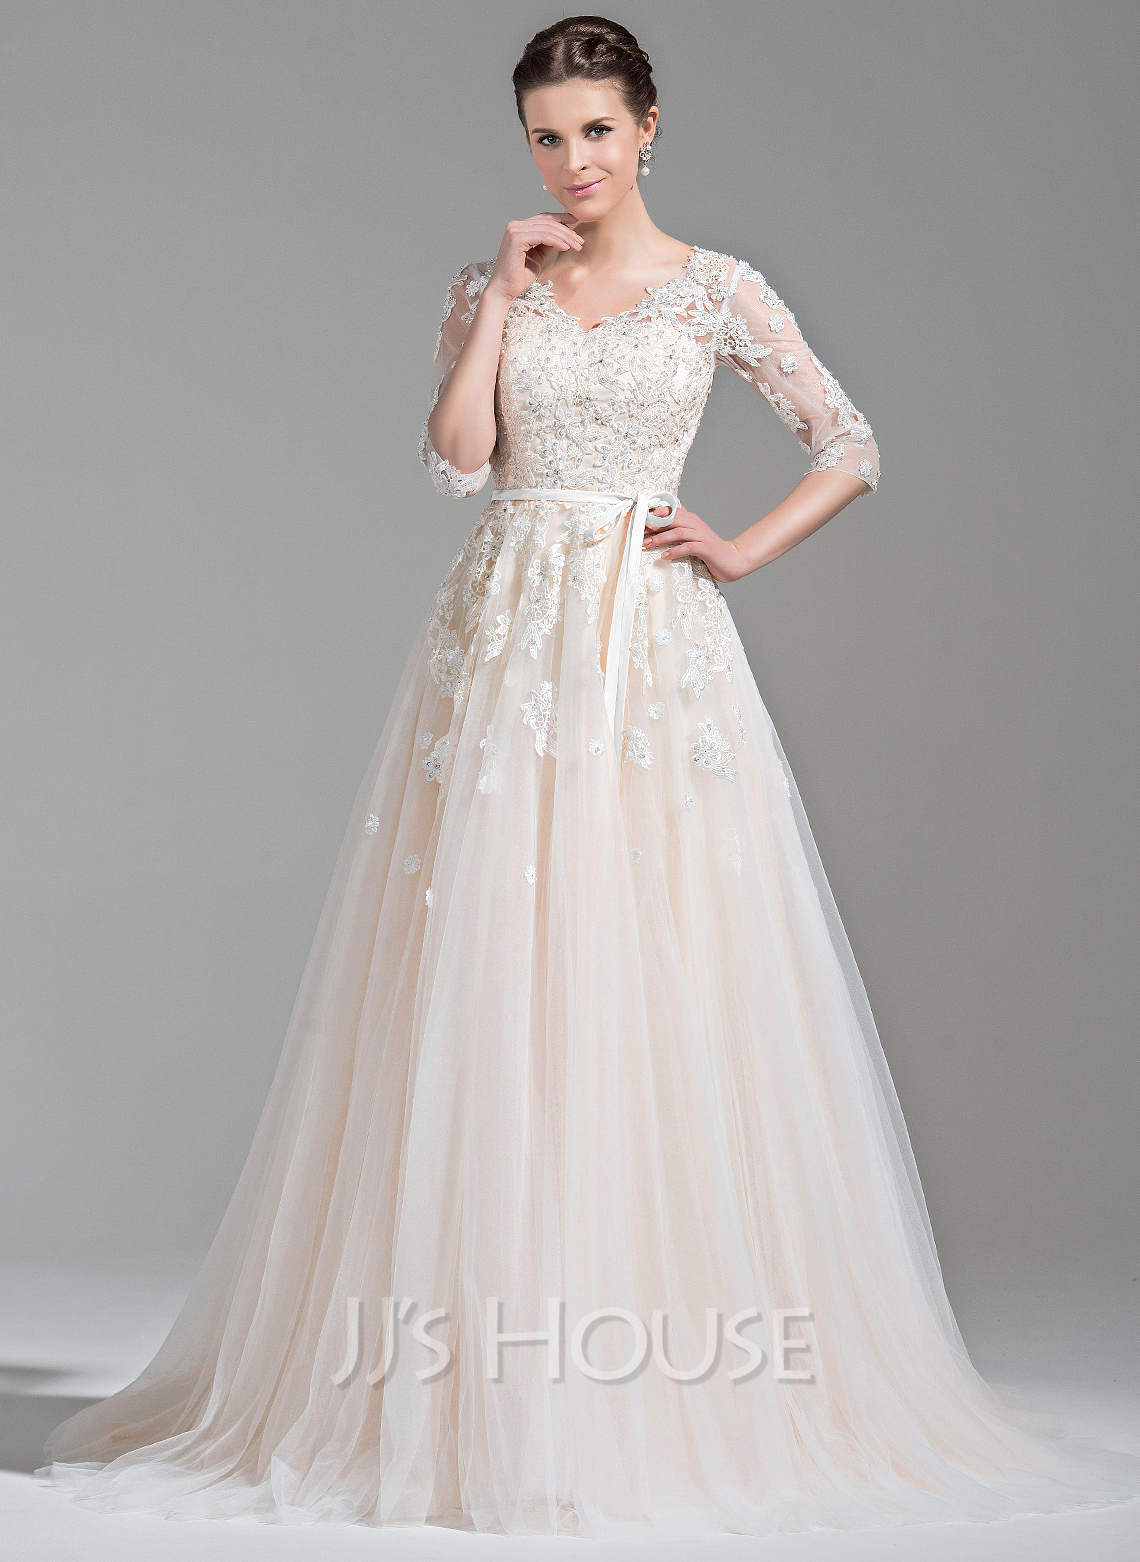 Cheap Wedding Dresses c2 dollar wedding dress Ball Gown V neck Court Train Tulle Wedding Dress With Beading Appliques Lace Sequins